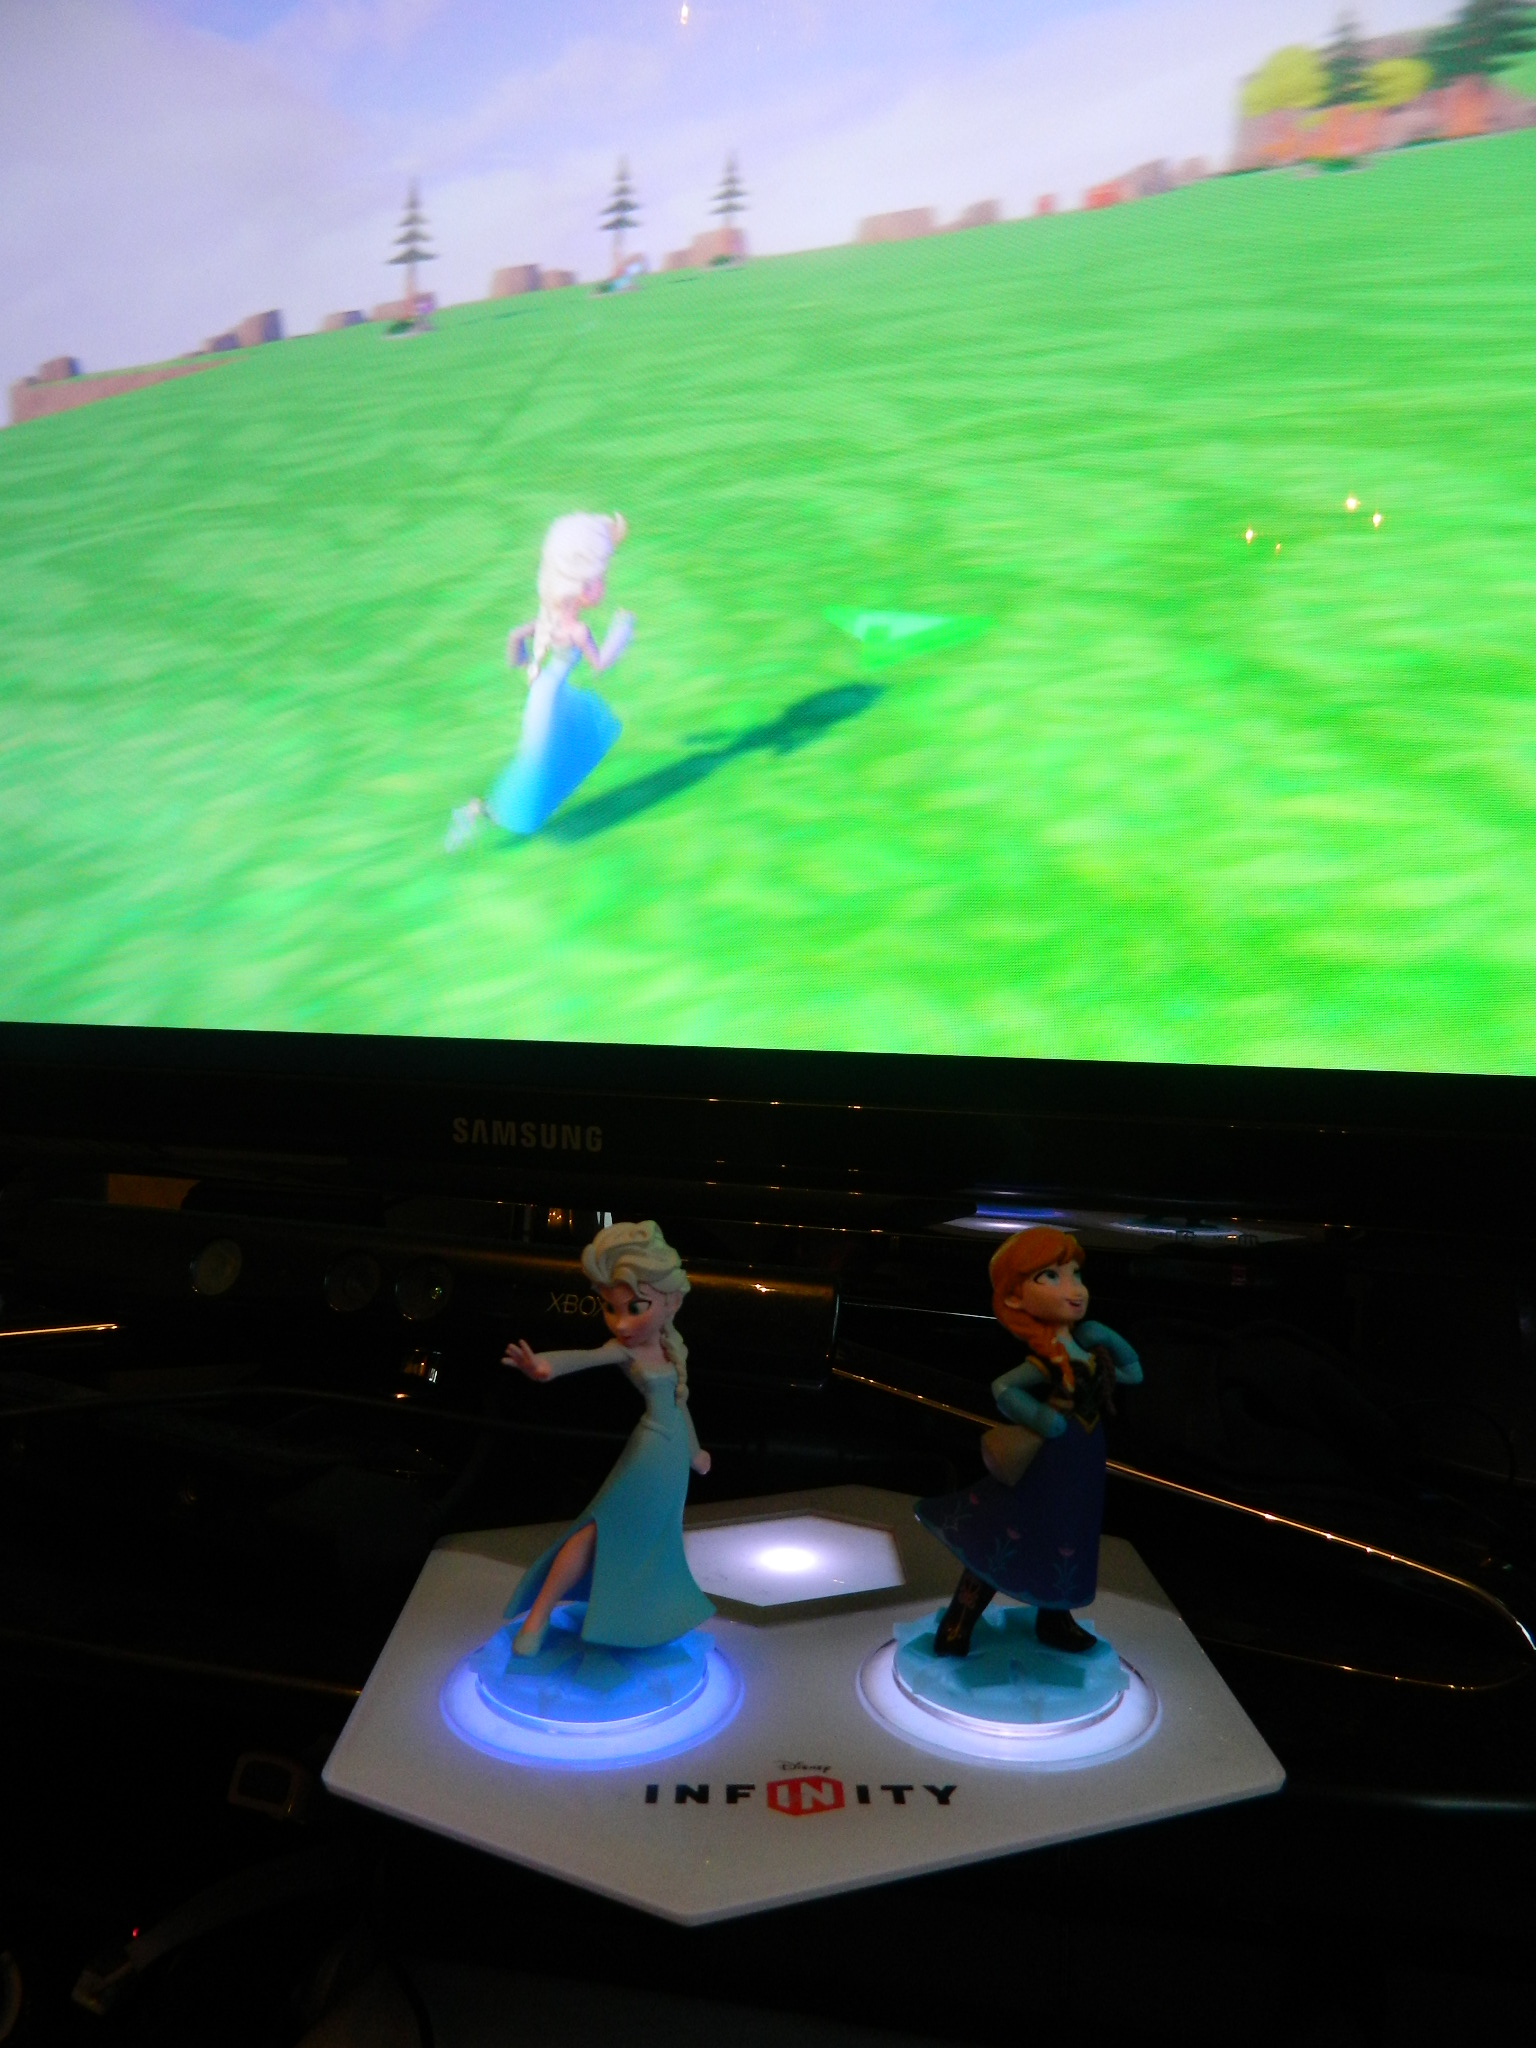 Disney Infinity: The Games and Figures Available